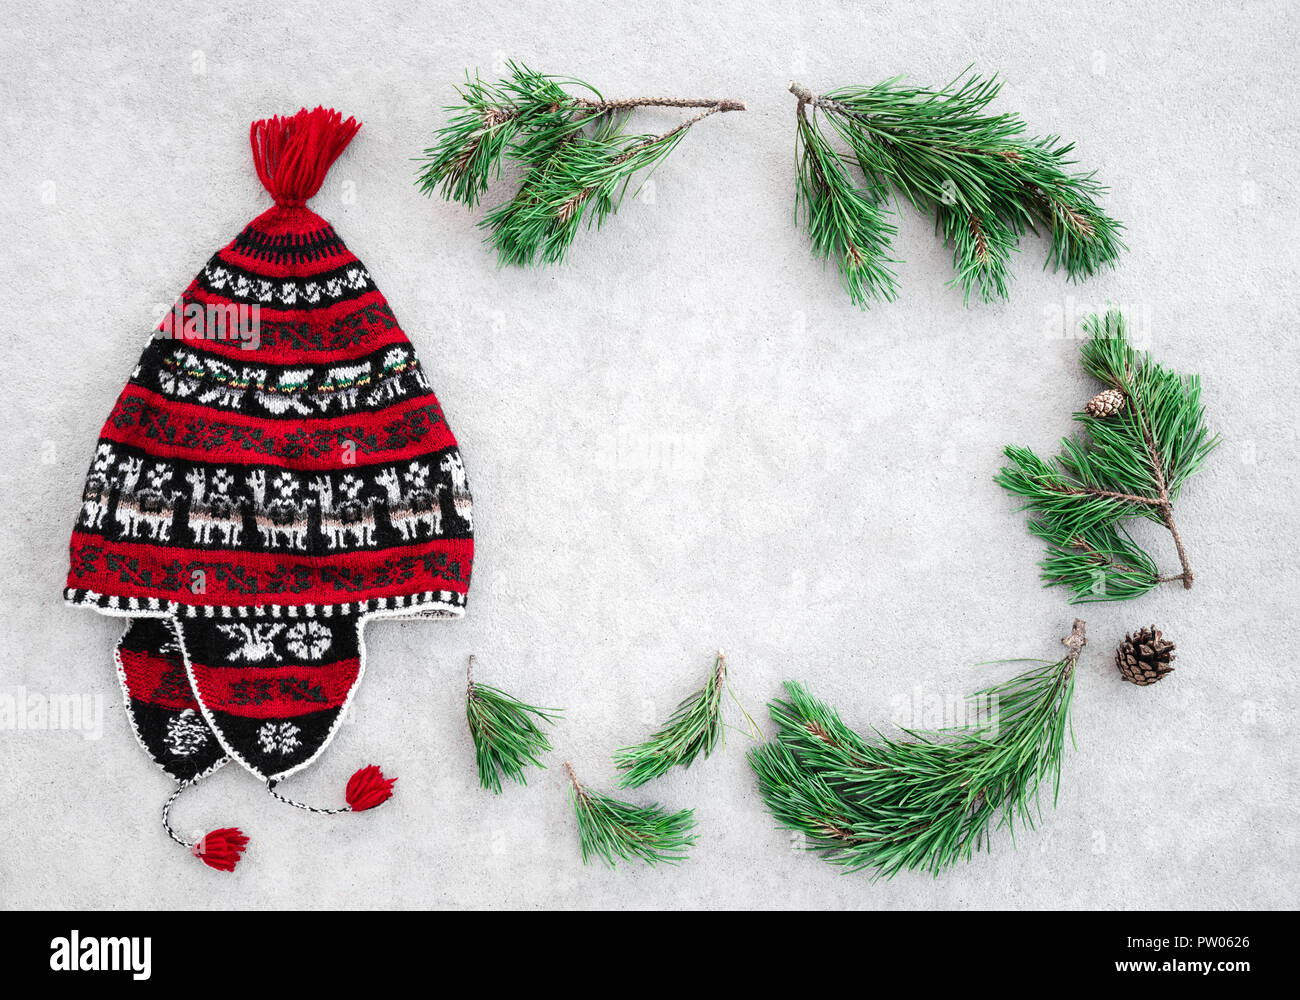 Red knitted winter hat and green pine branches forming a frame, on light gray background. Stock Photo